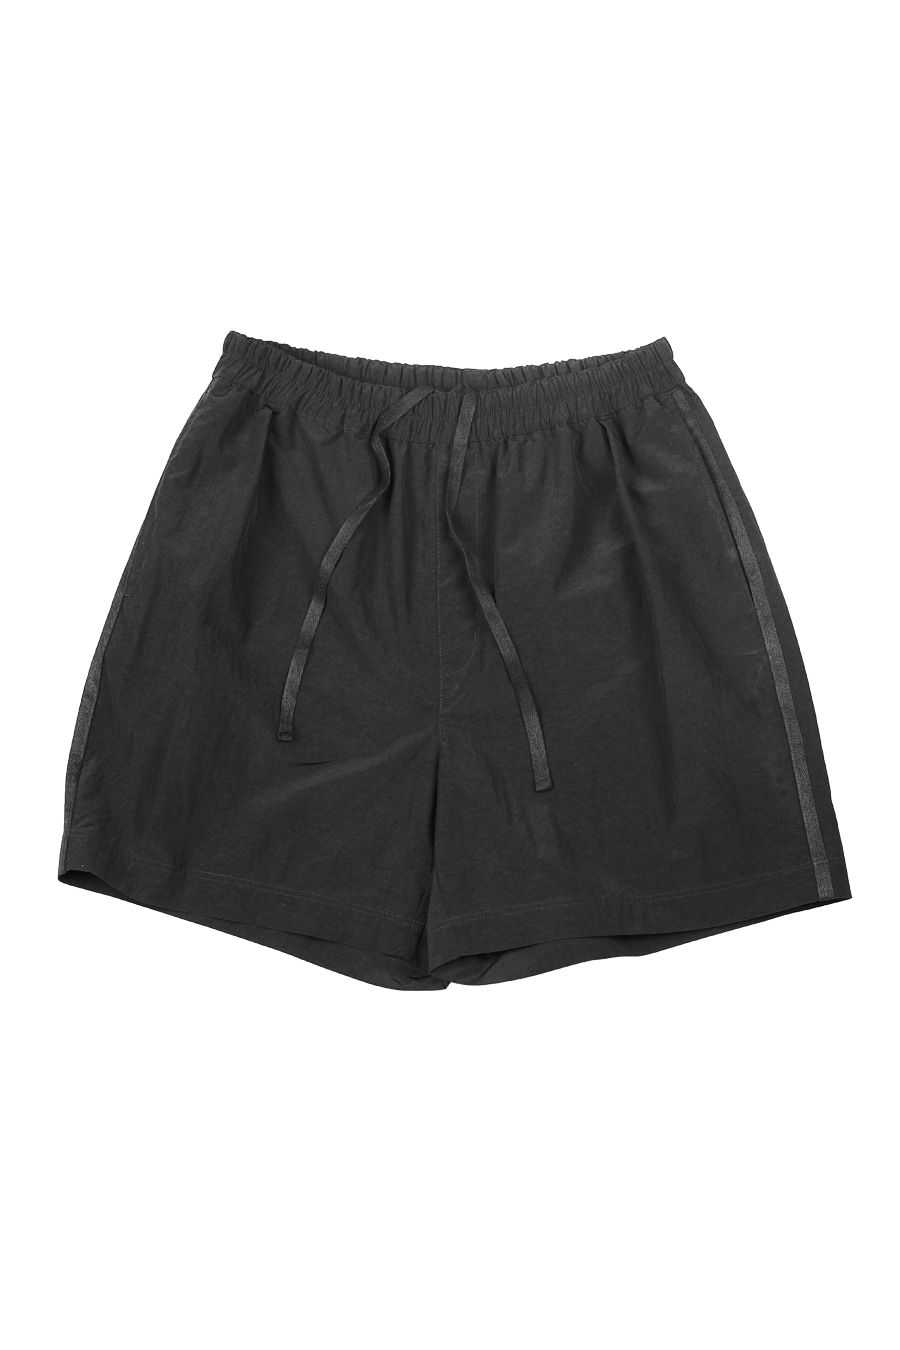 Lined Balloon Swim Half Pants / BlackArttitude(아티튜드)